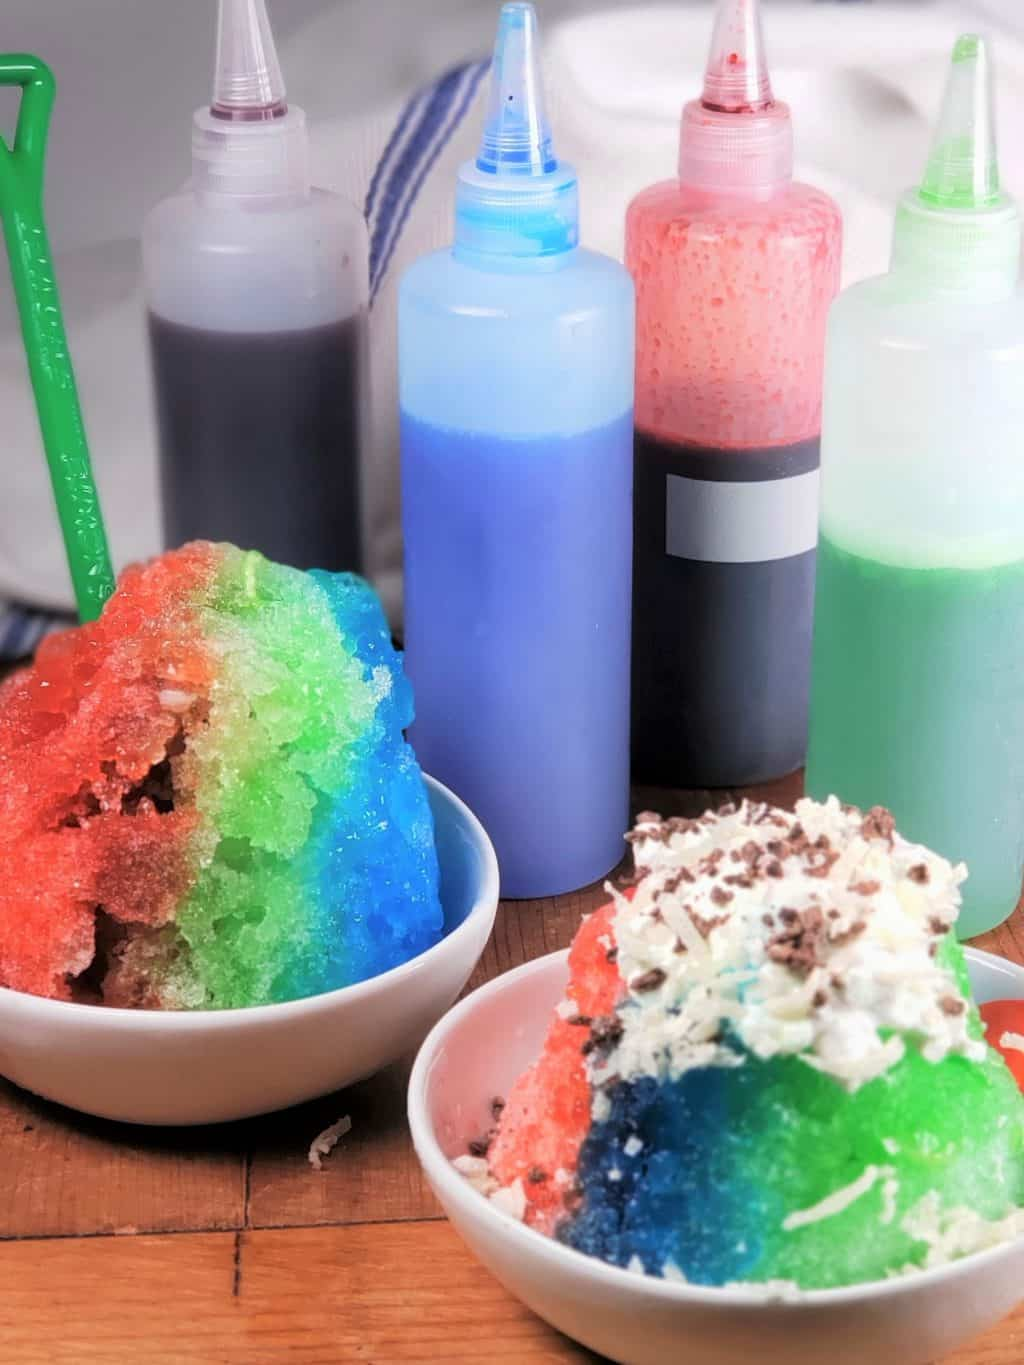 4 Bottles of Purple, Blue, Red and Green Sugar Free Shave Ice Syrup with two Shave Ice Cups in White Bowls